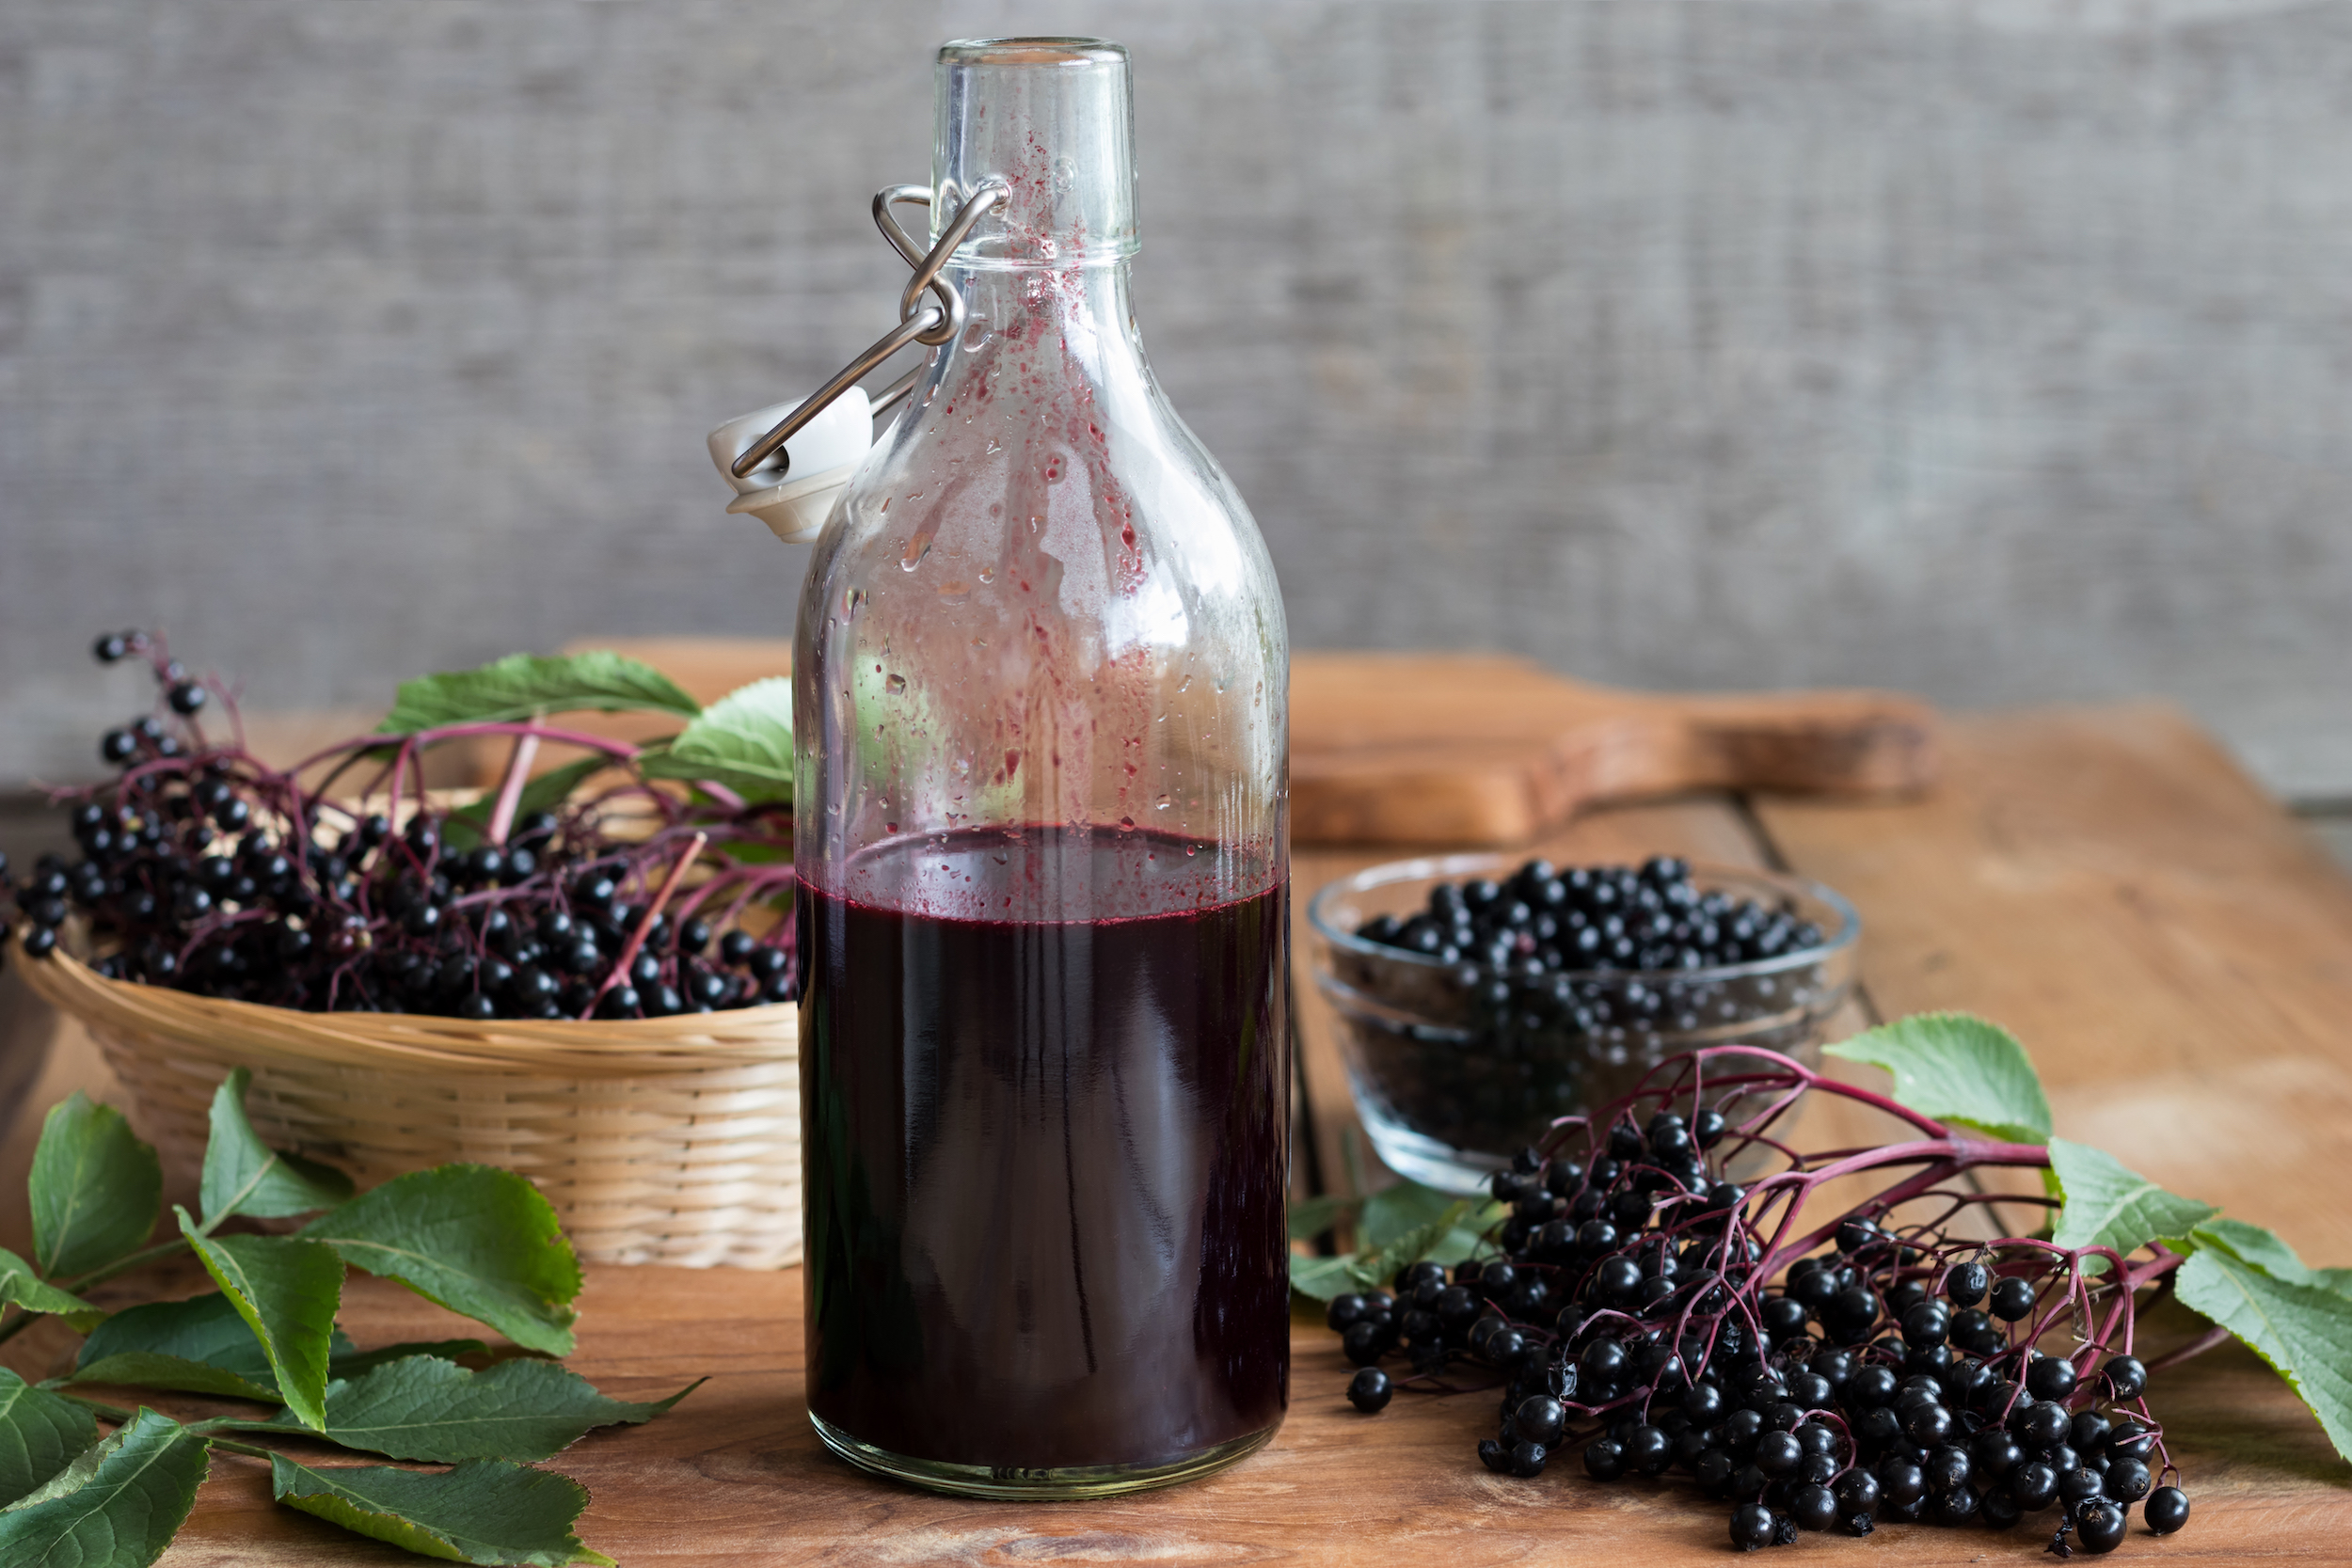 How to Make Your Own Elderberry Syrup to Fight Off Cold & Flu